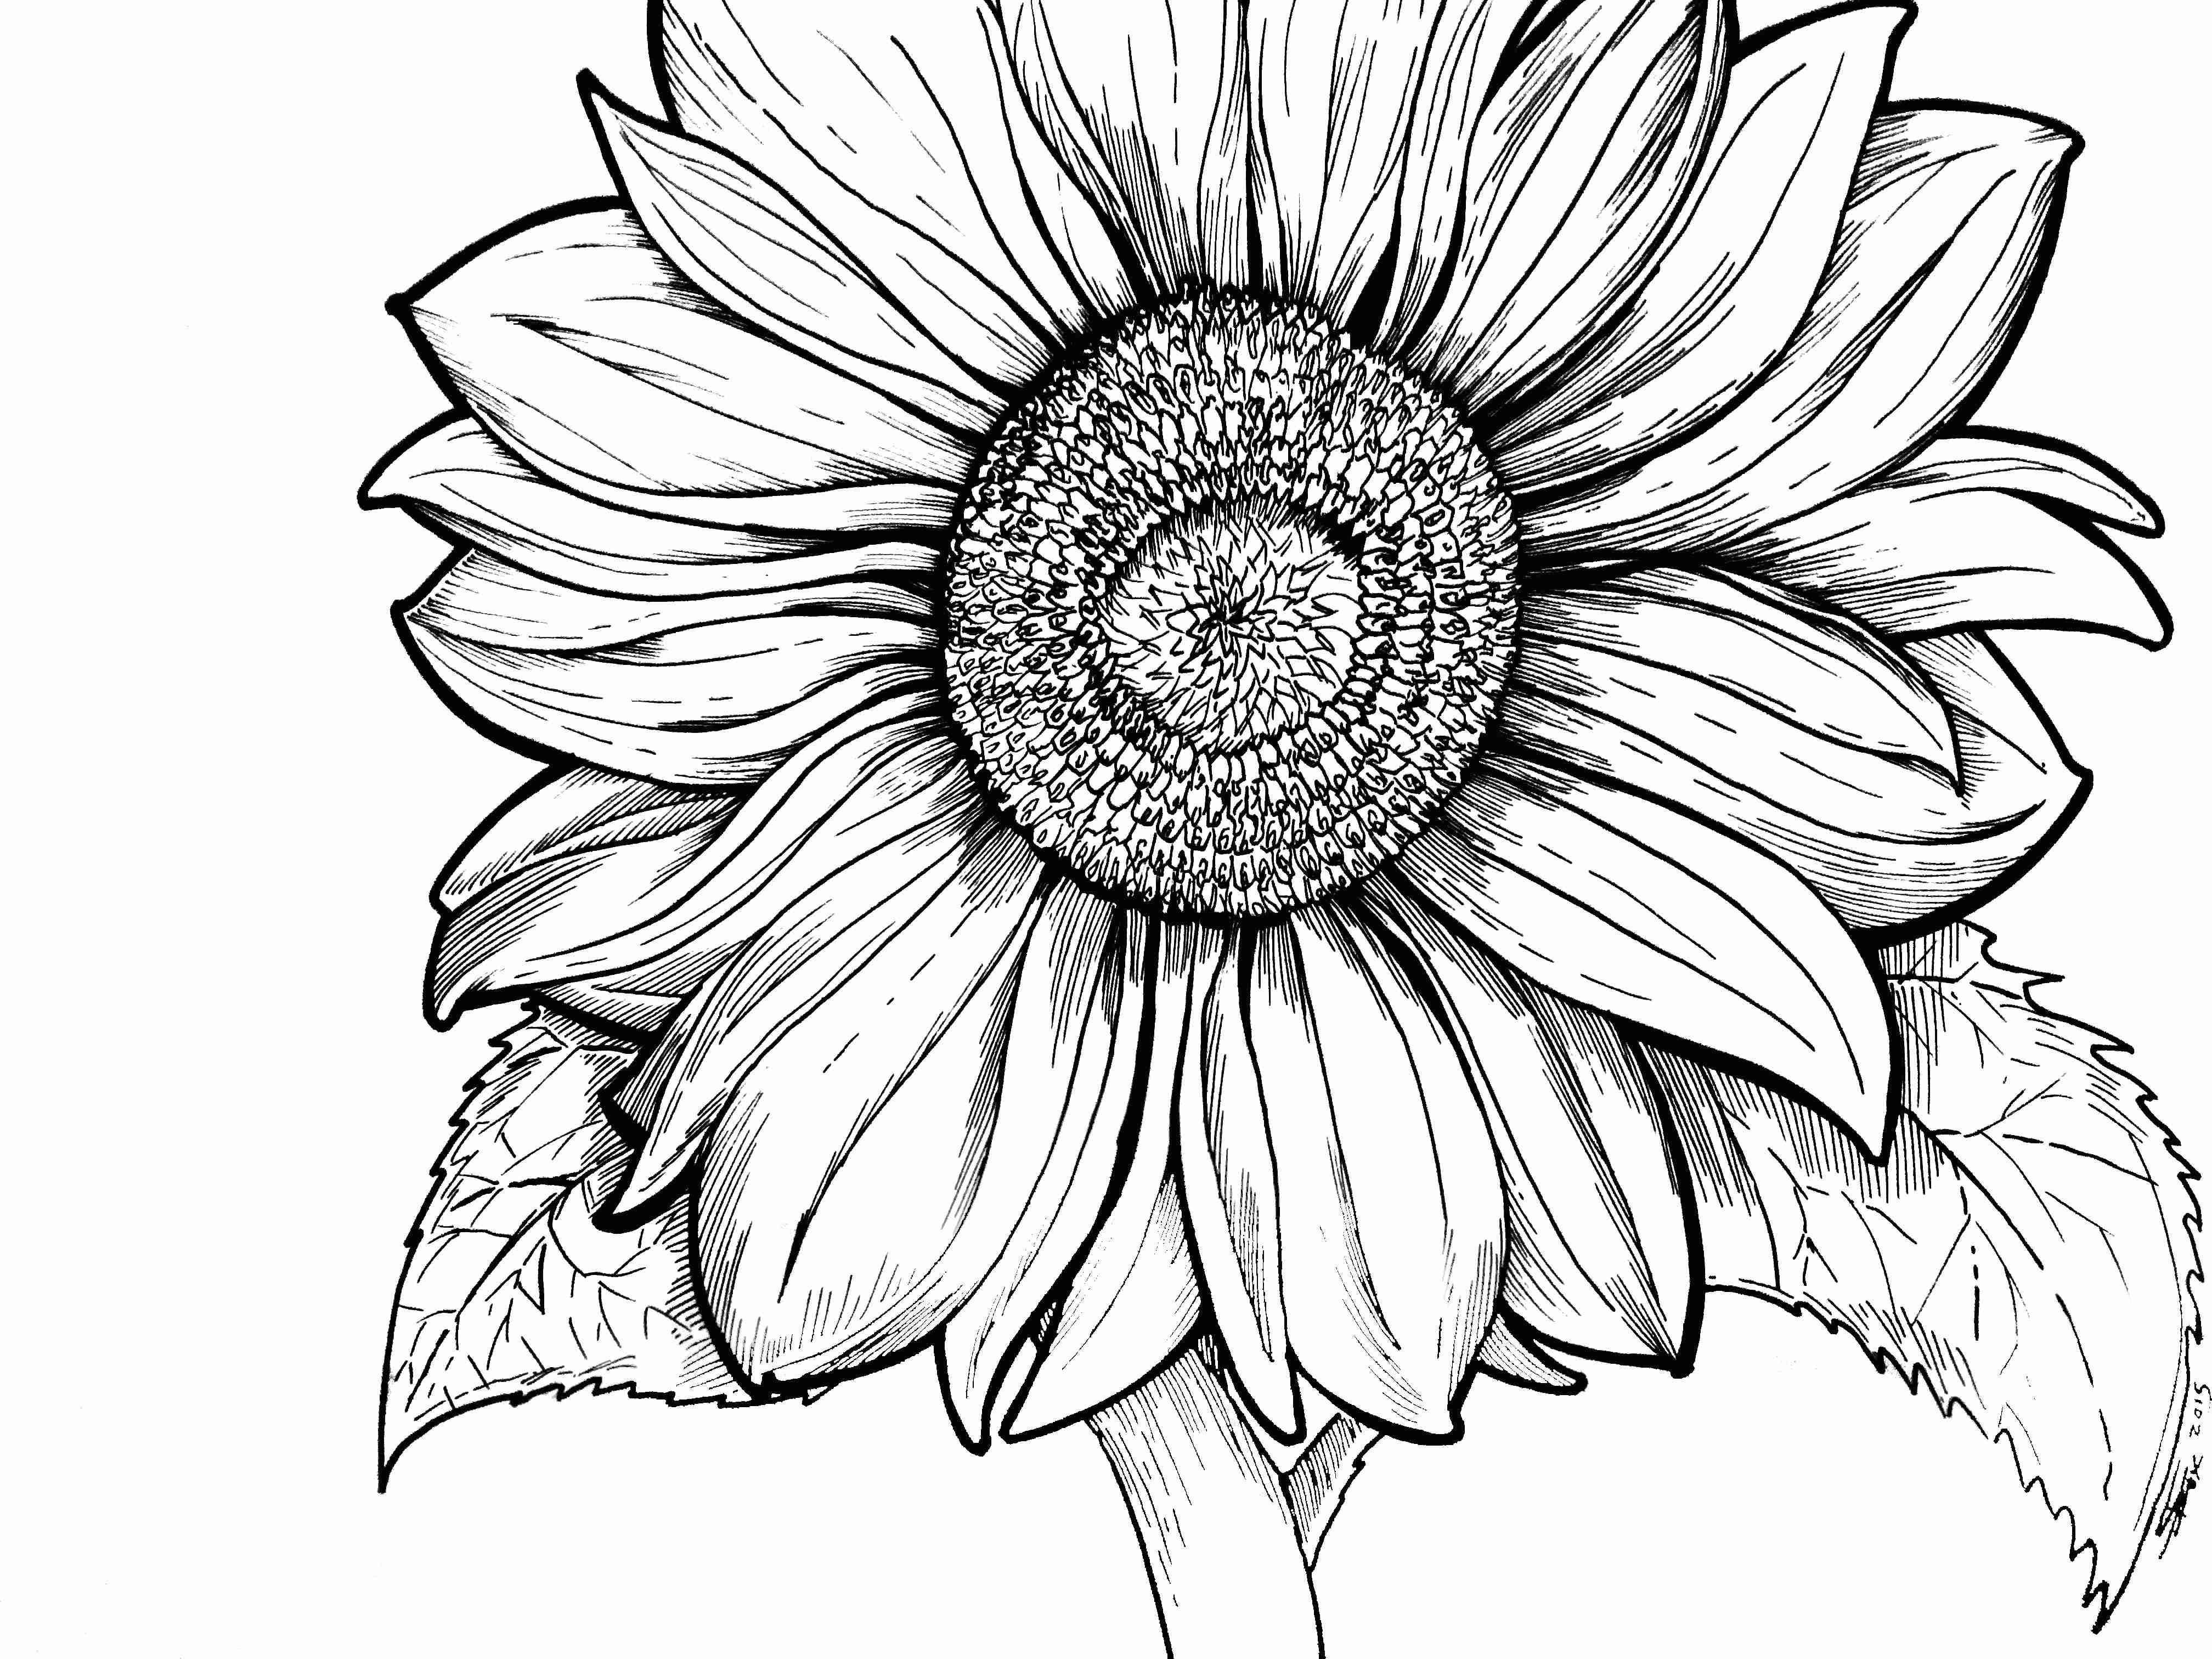 coloring sunflower picture sunflower coloring pages for adults at getdrawings free sunflower picture coloring